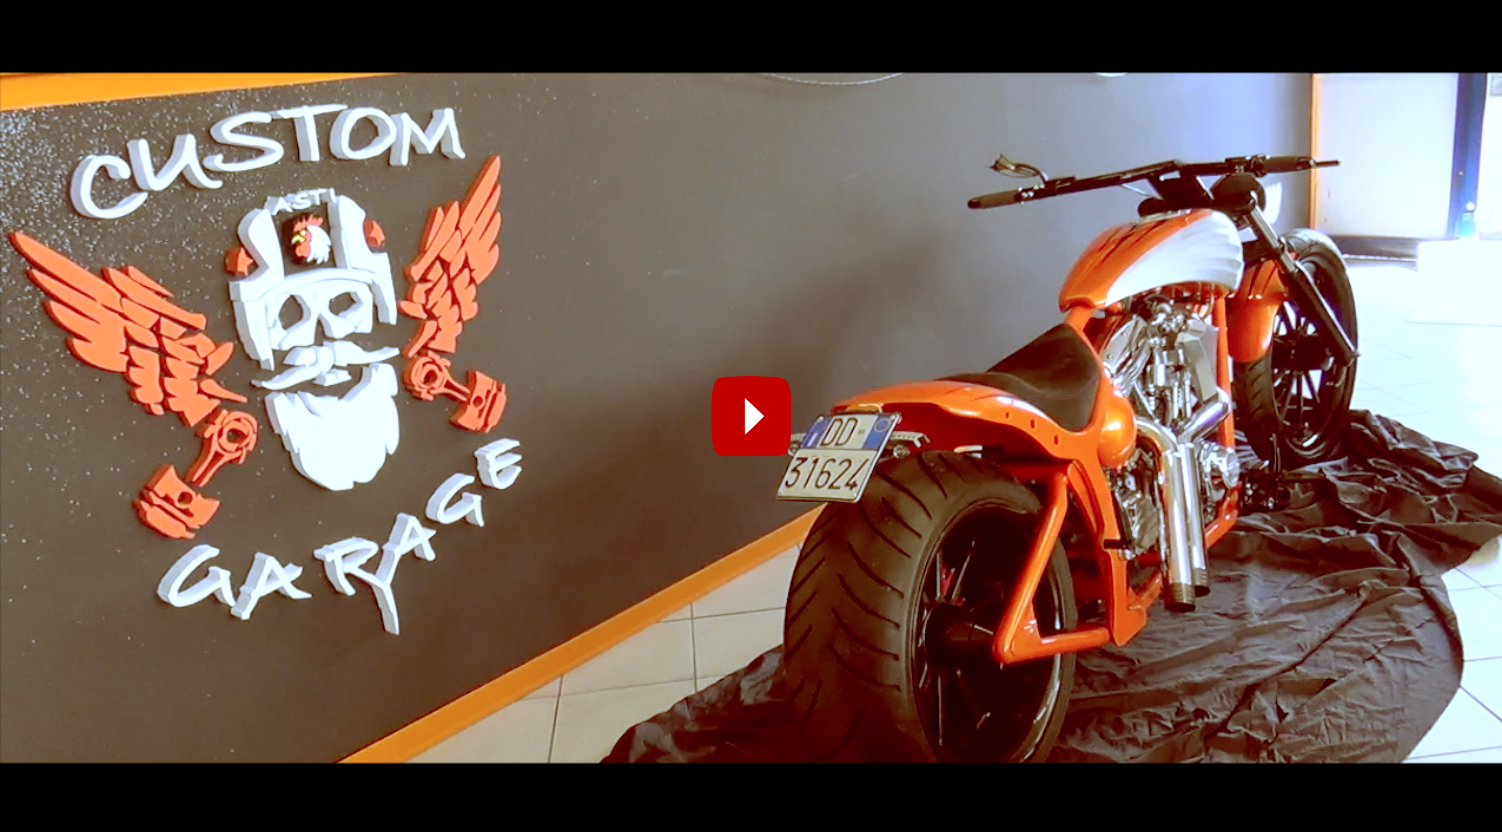 custom-garage-asti-inaugurazione-video-harleysti-com